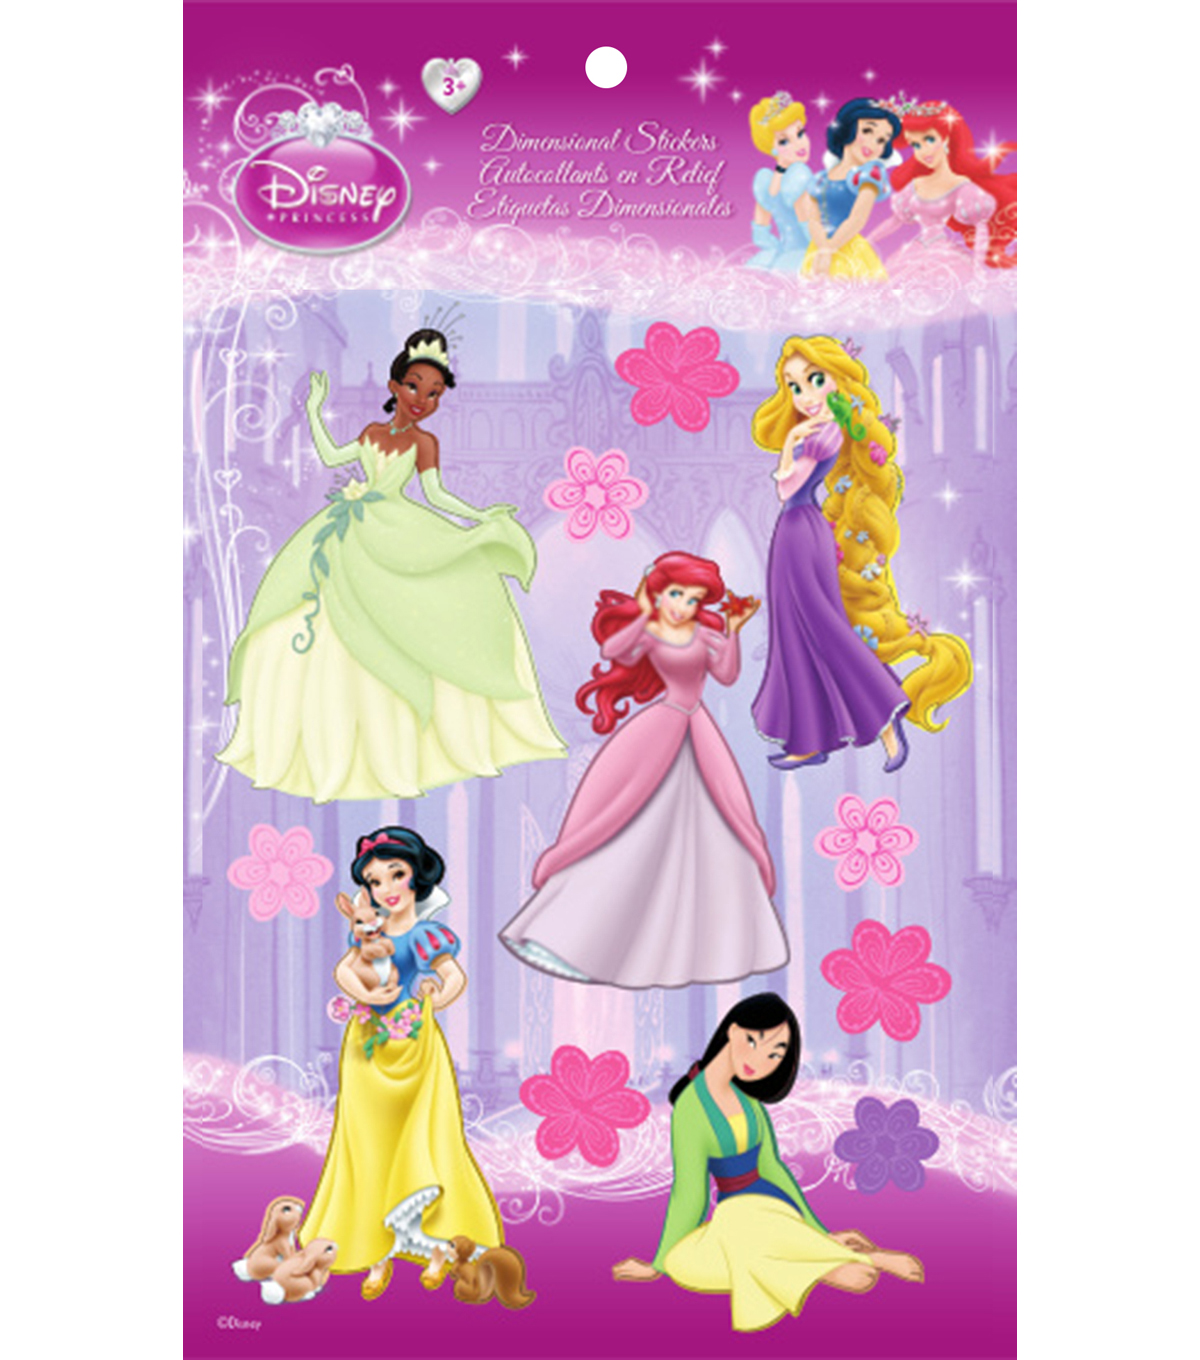 Disney Princess Dimensional Stickers-Group 1